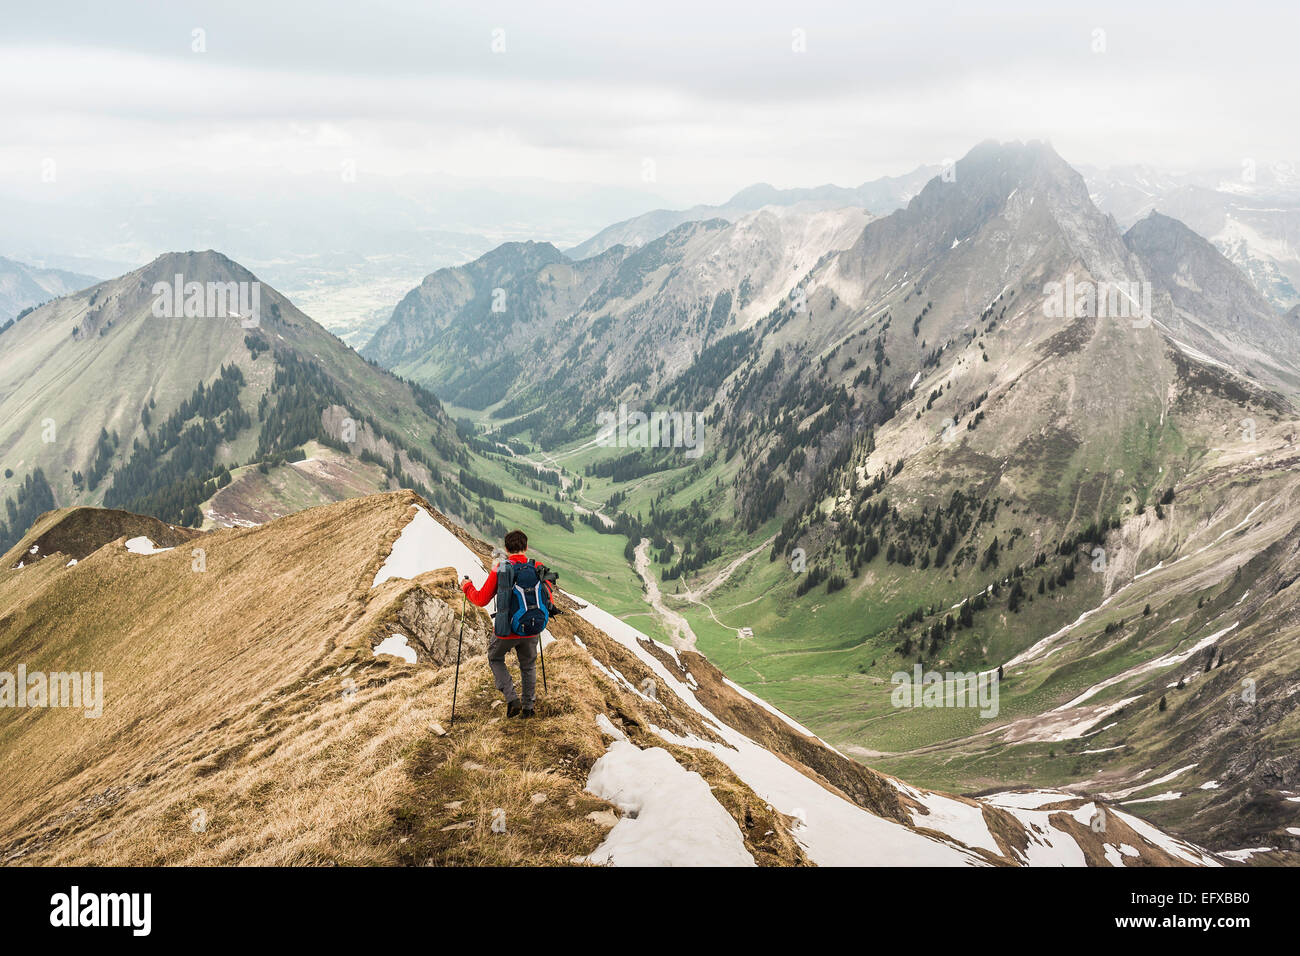 Young man mountain trekking down ridge in Bavarian Alps, Oberstdorf, Bavaria, Germany - Stock Image